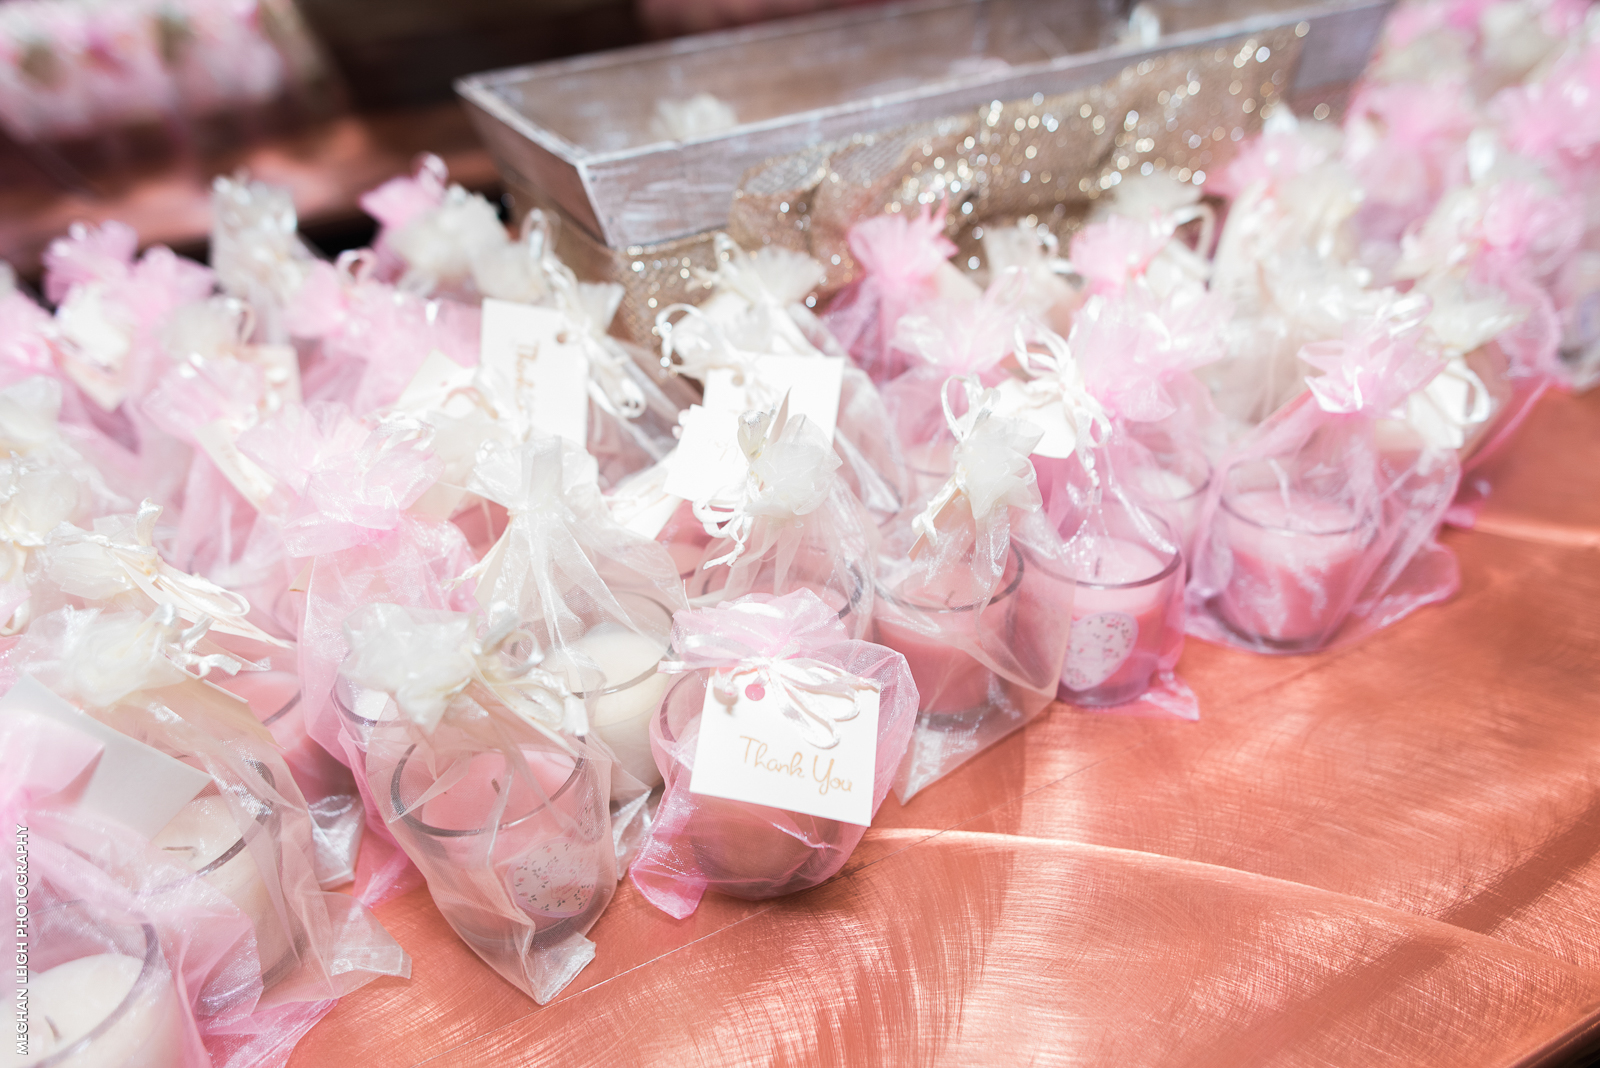 Wedding Favors Your Guests Will Enjoy | Sterling Ballroom, Eatontown NJ